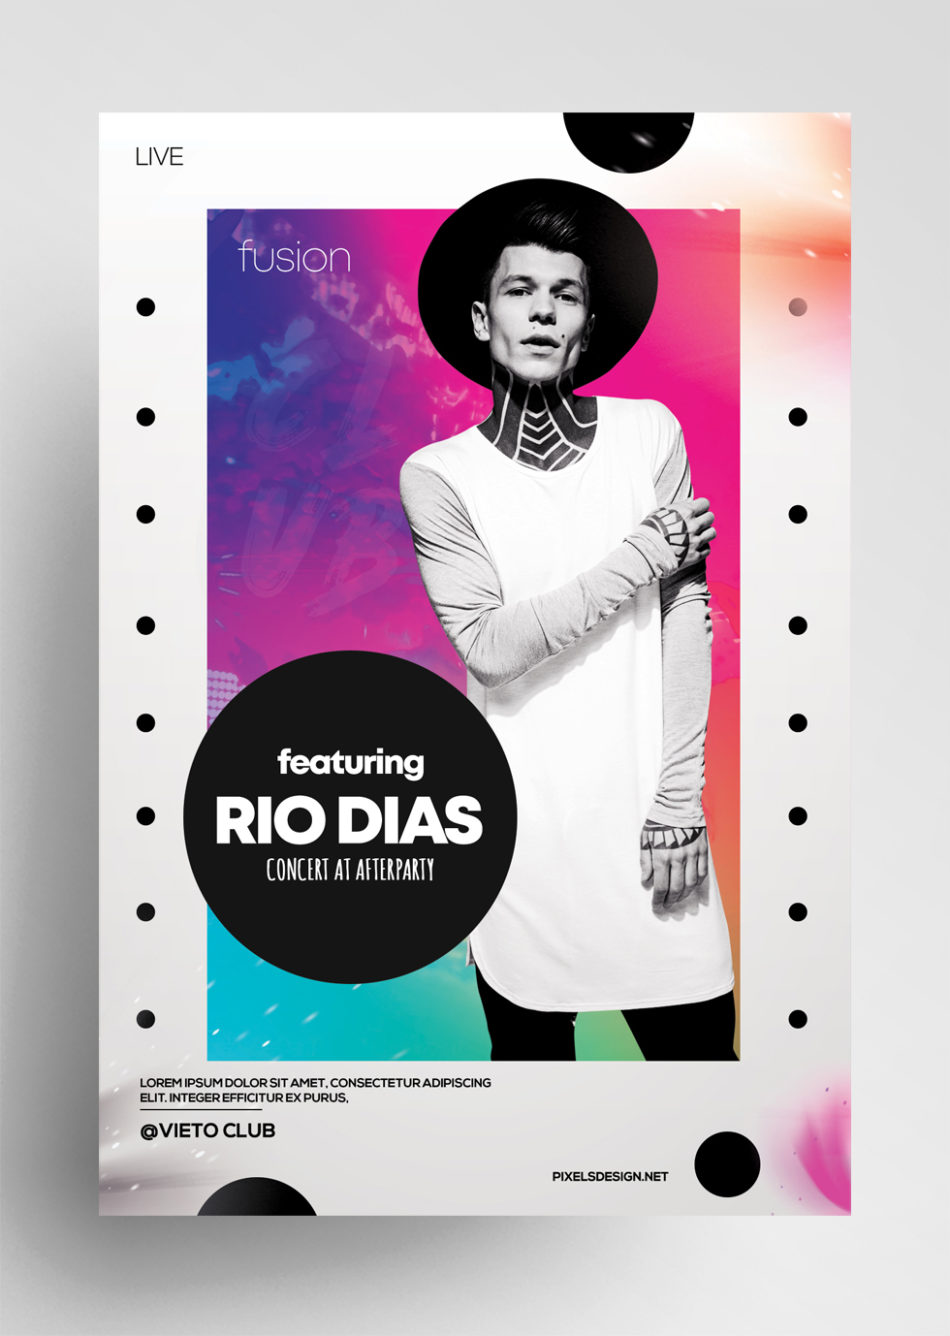 Concert Abstract Free PSD Flyer Template